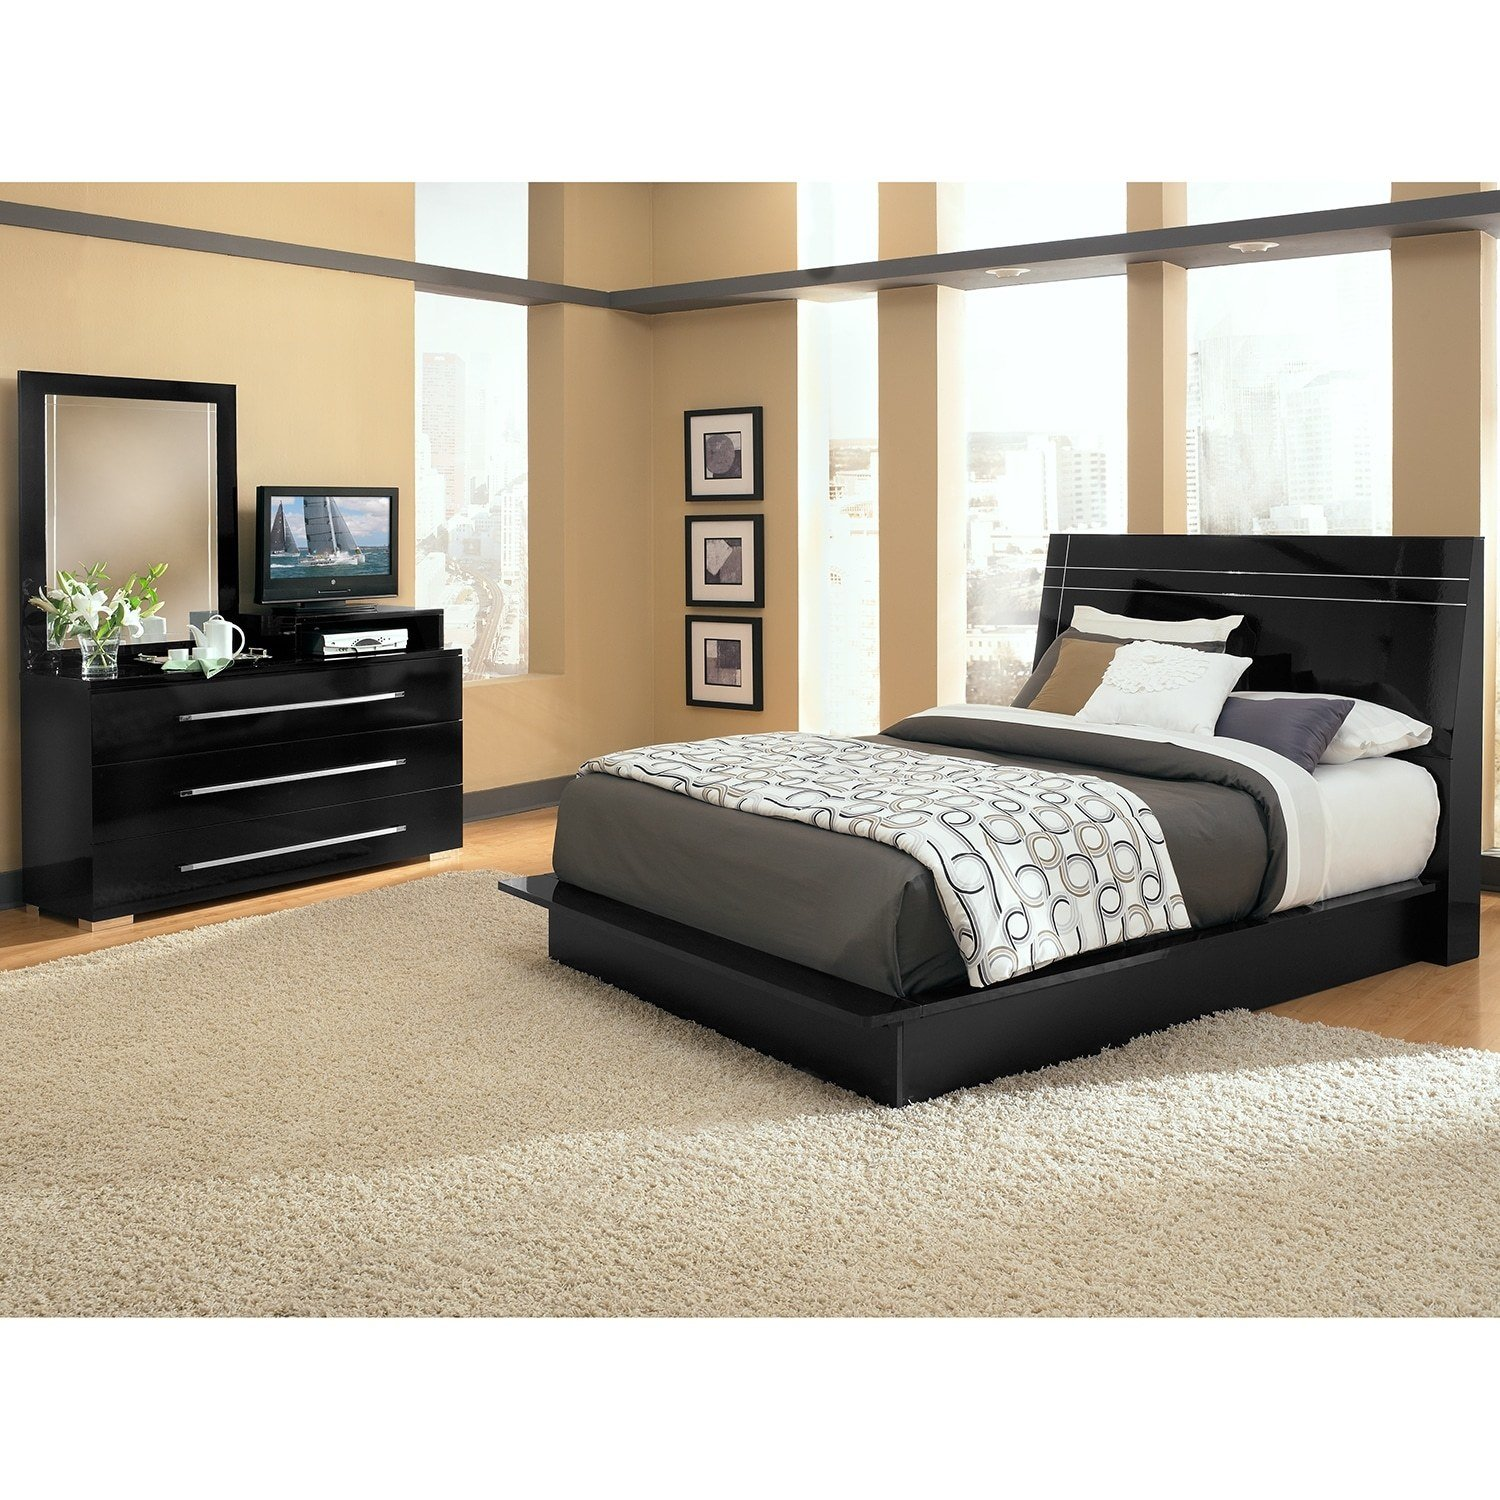 Best Dimora 5 Piece King Panel Bedroom Set With Media Dresser With Pictures